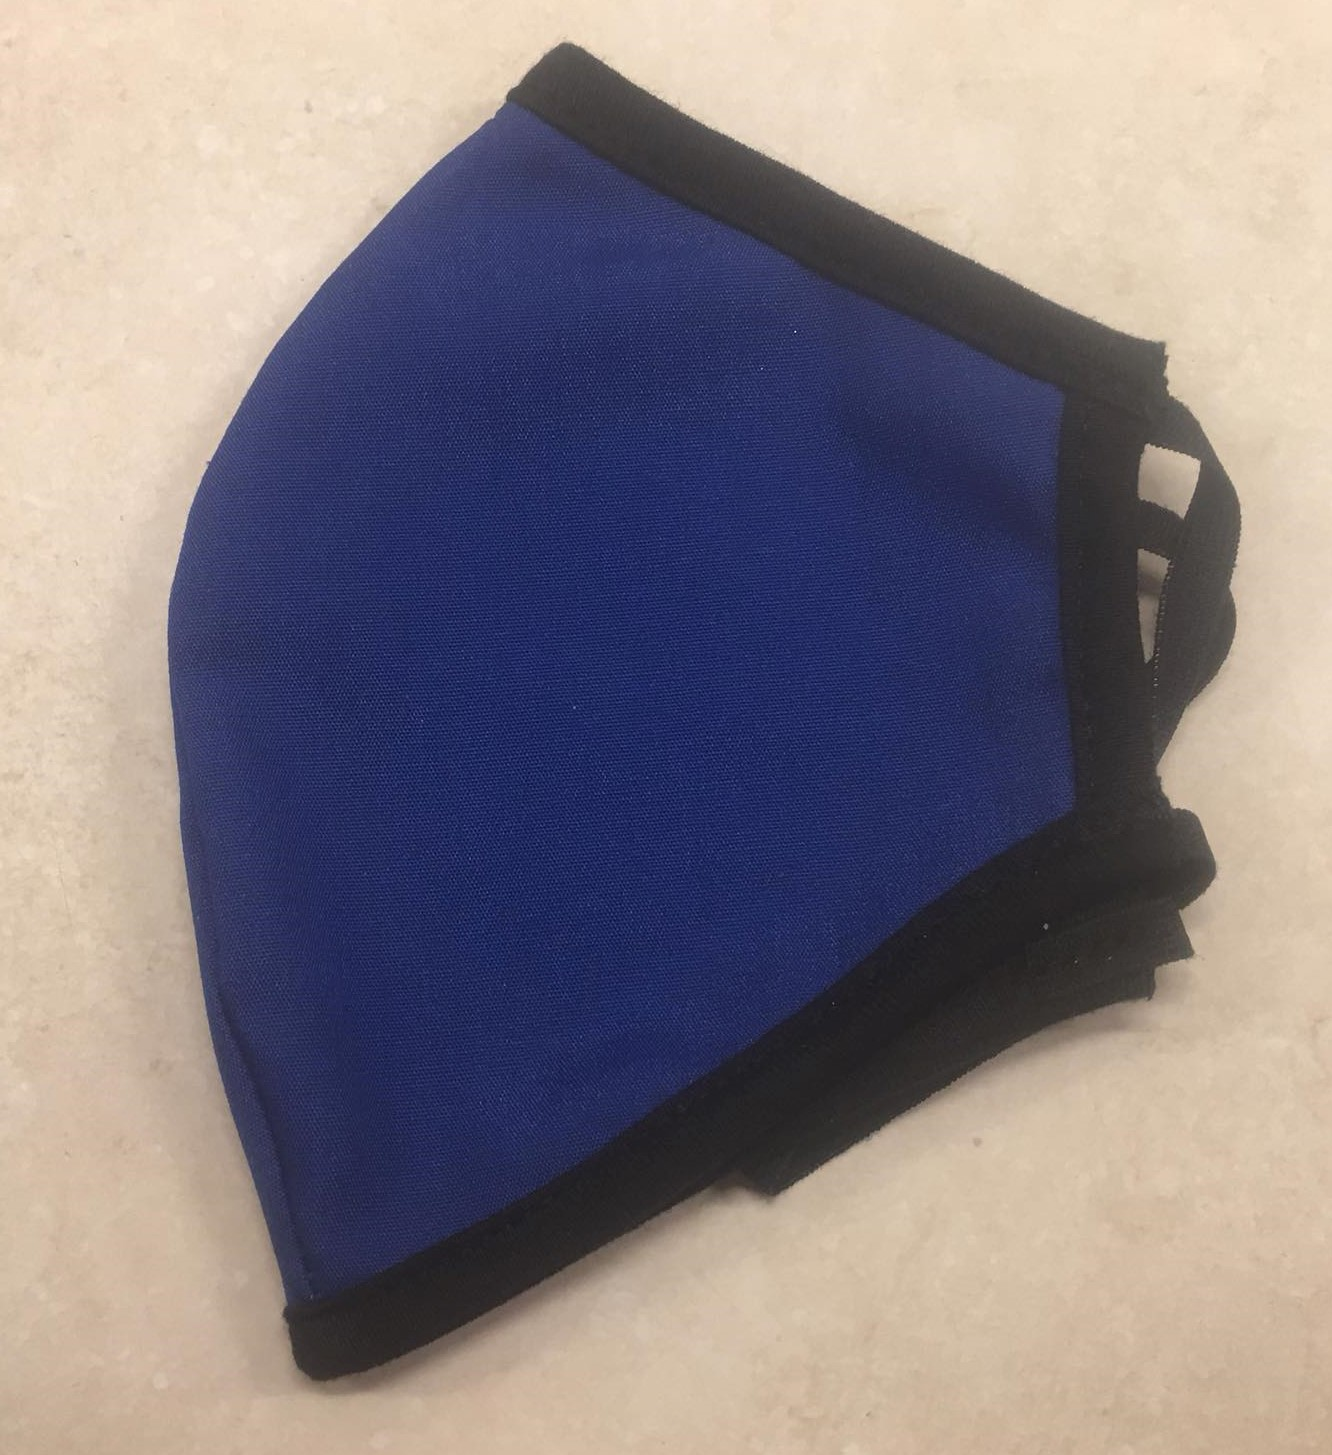 Face mask blue with black